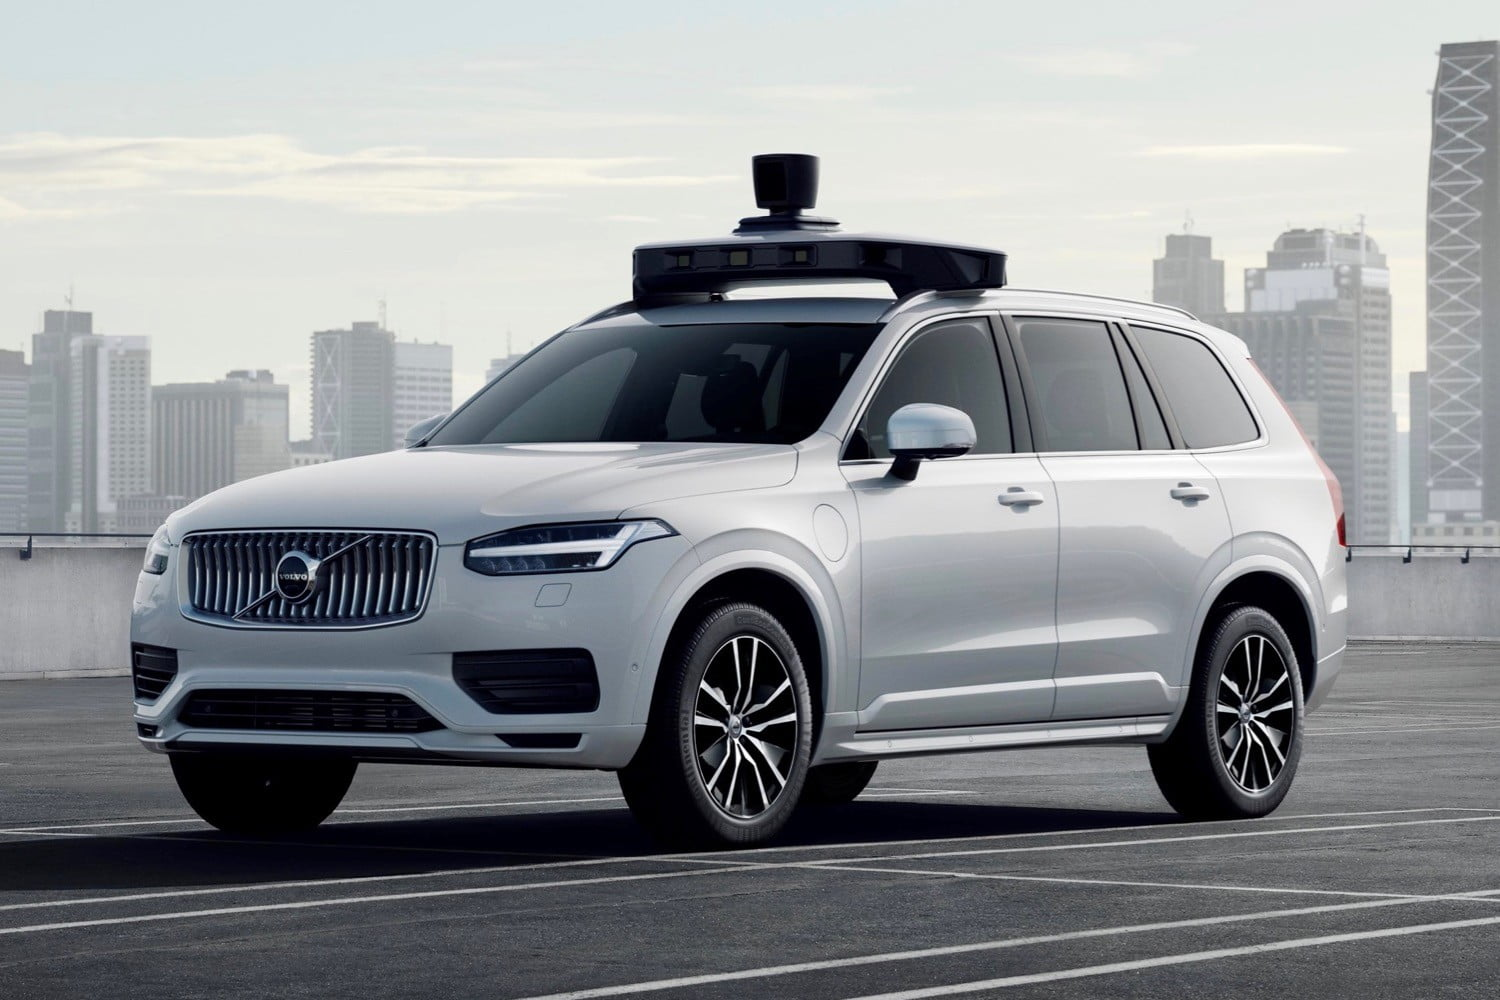 Self-drive Car - Its Impact on Economic System And Personal Life